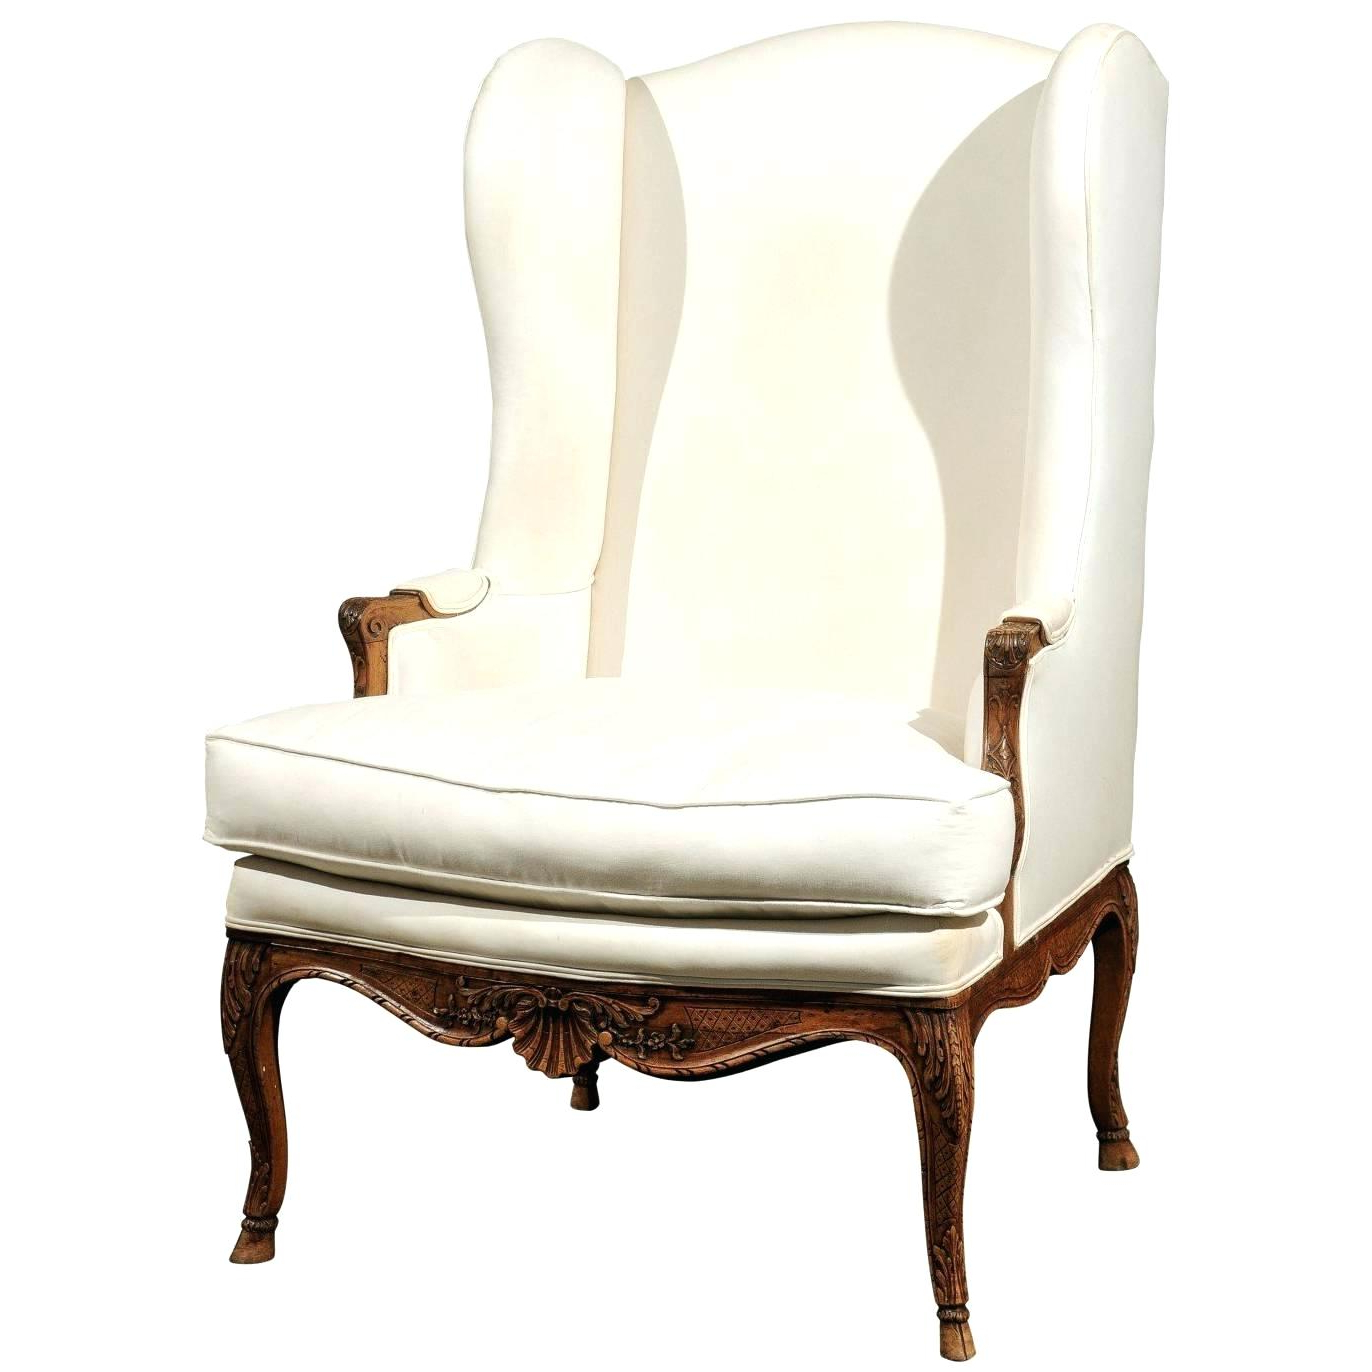 Recent Bailey Linen Flare Arm Wing Skirted Swivel Gliders In Skirted Wingback Chair Bailey Flare Arm Wing Skirted Swivel Glider (View 5 of 9)